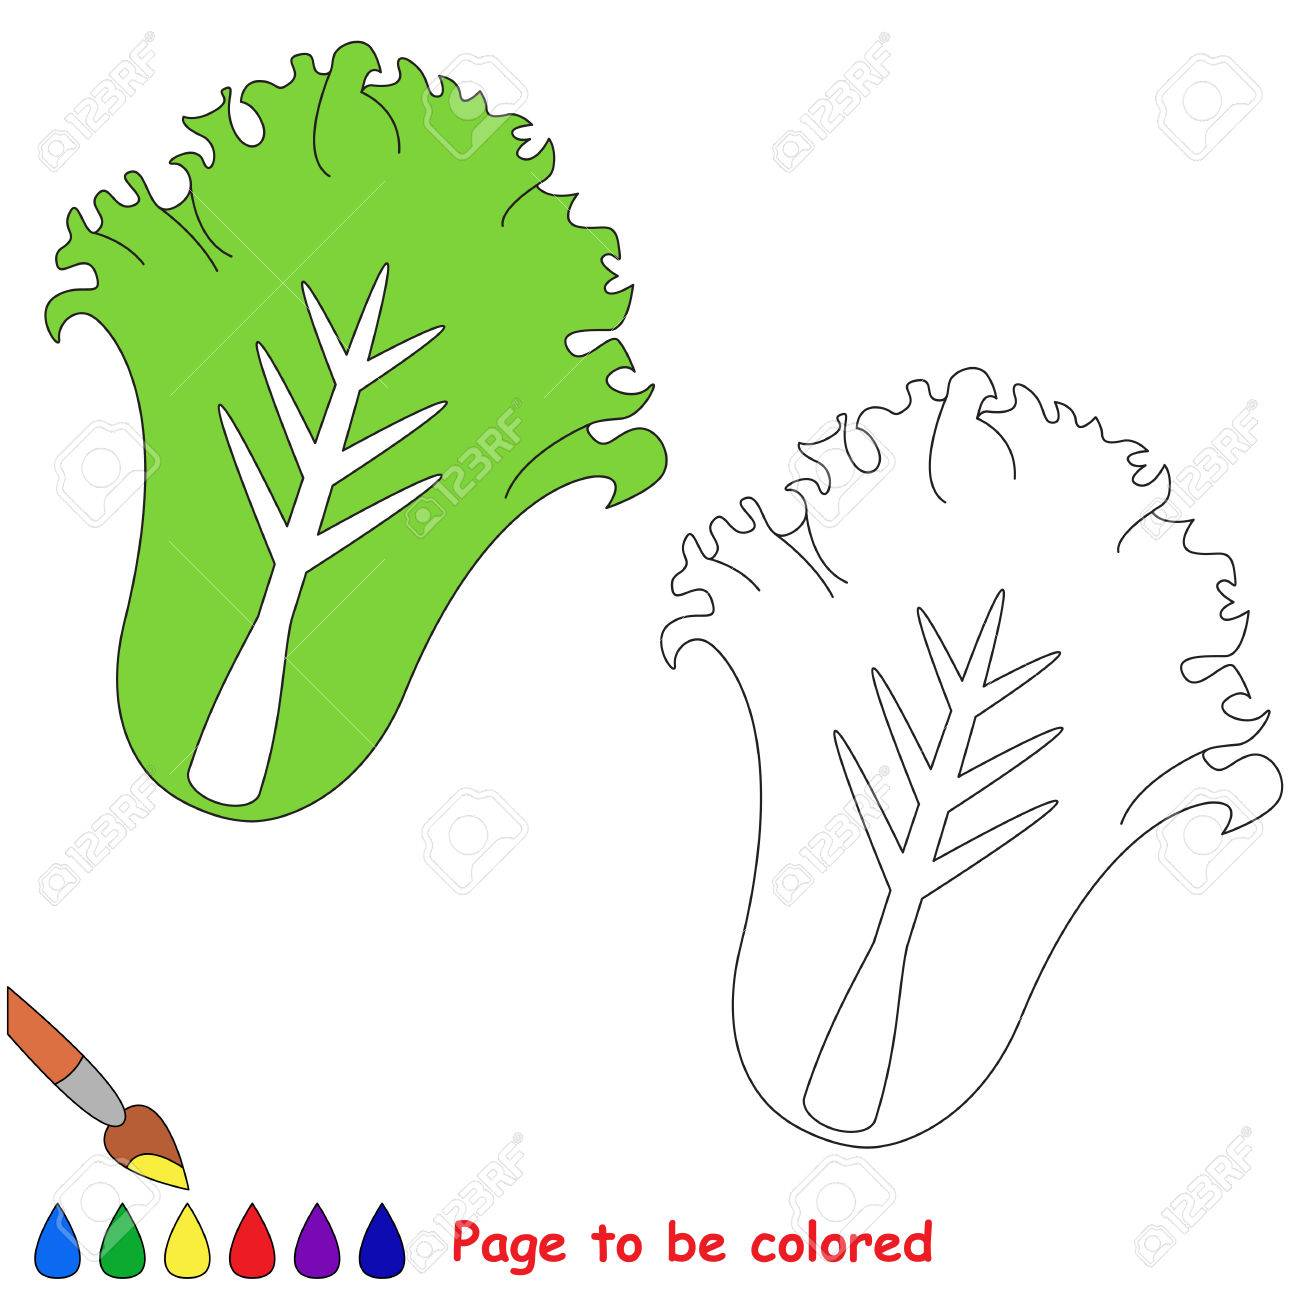 Green Lettuce To Be Colored, The Coloring Book For Preschool ...